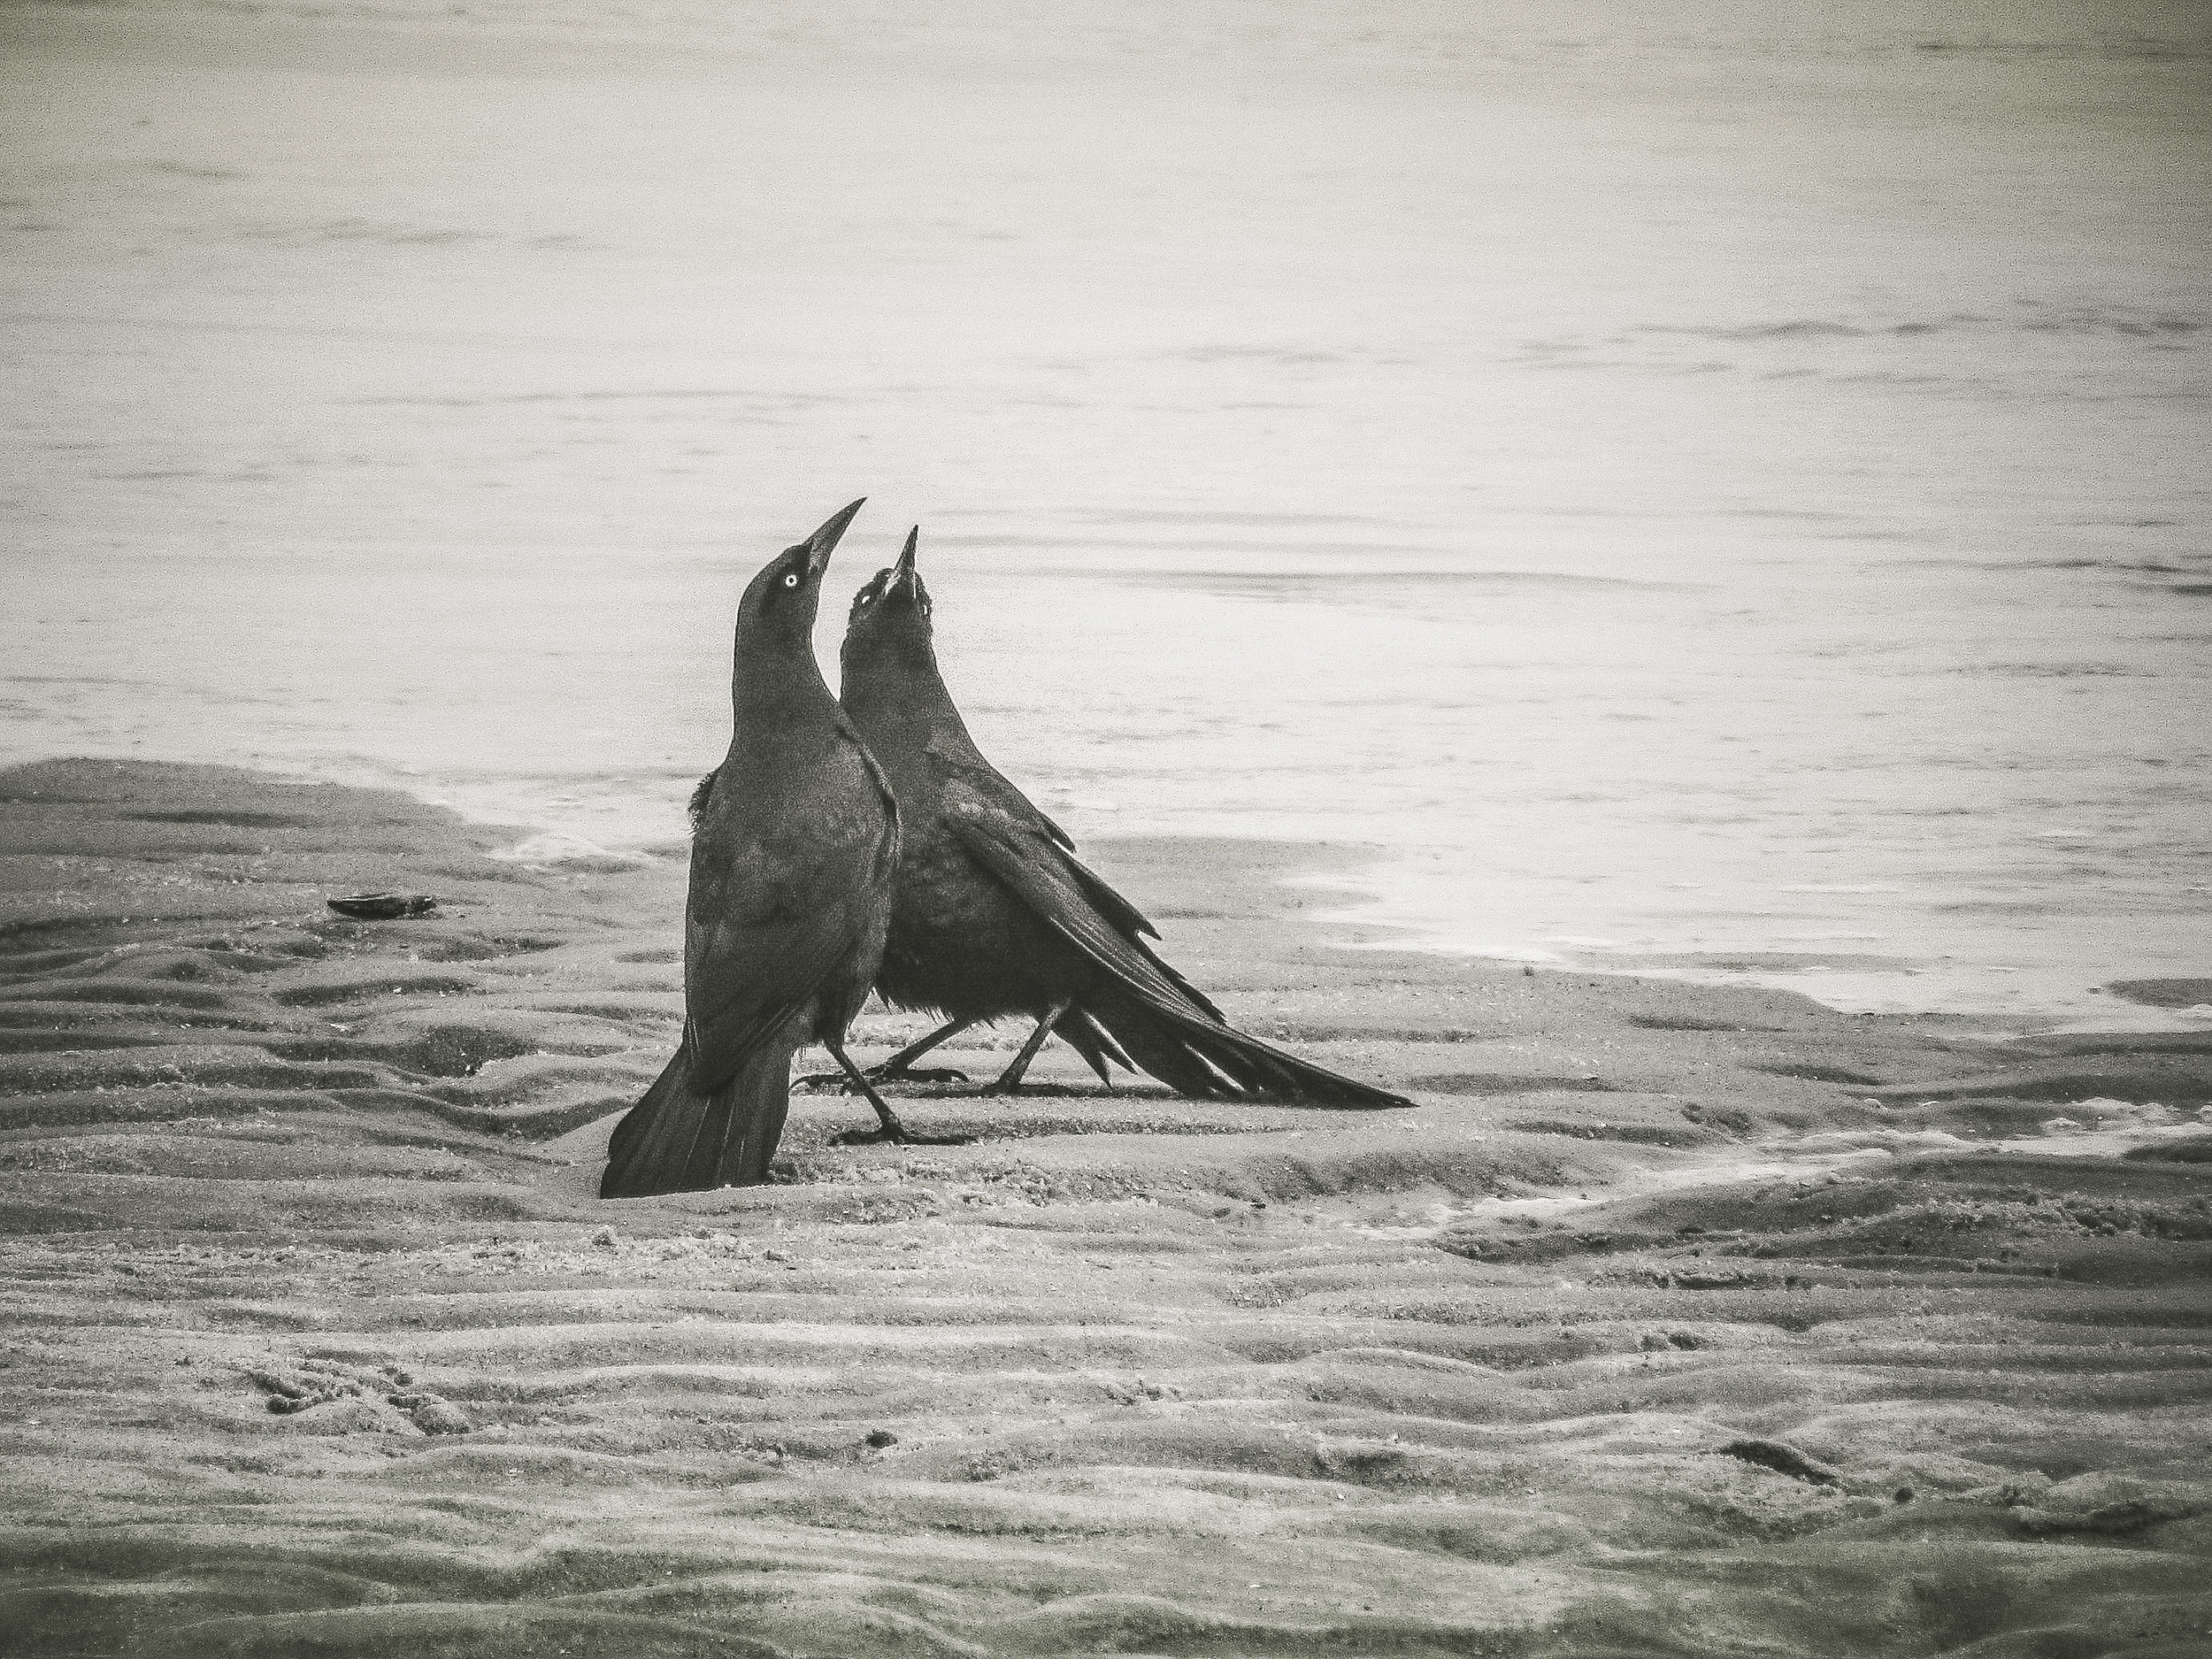 Boat-tailed Grackles in Courtship Photo: Rose Anderson